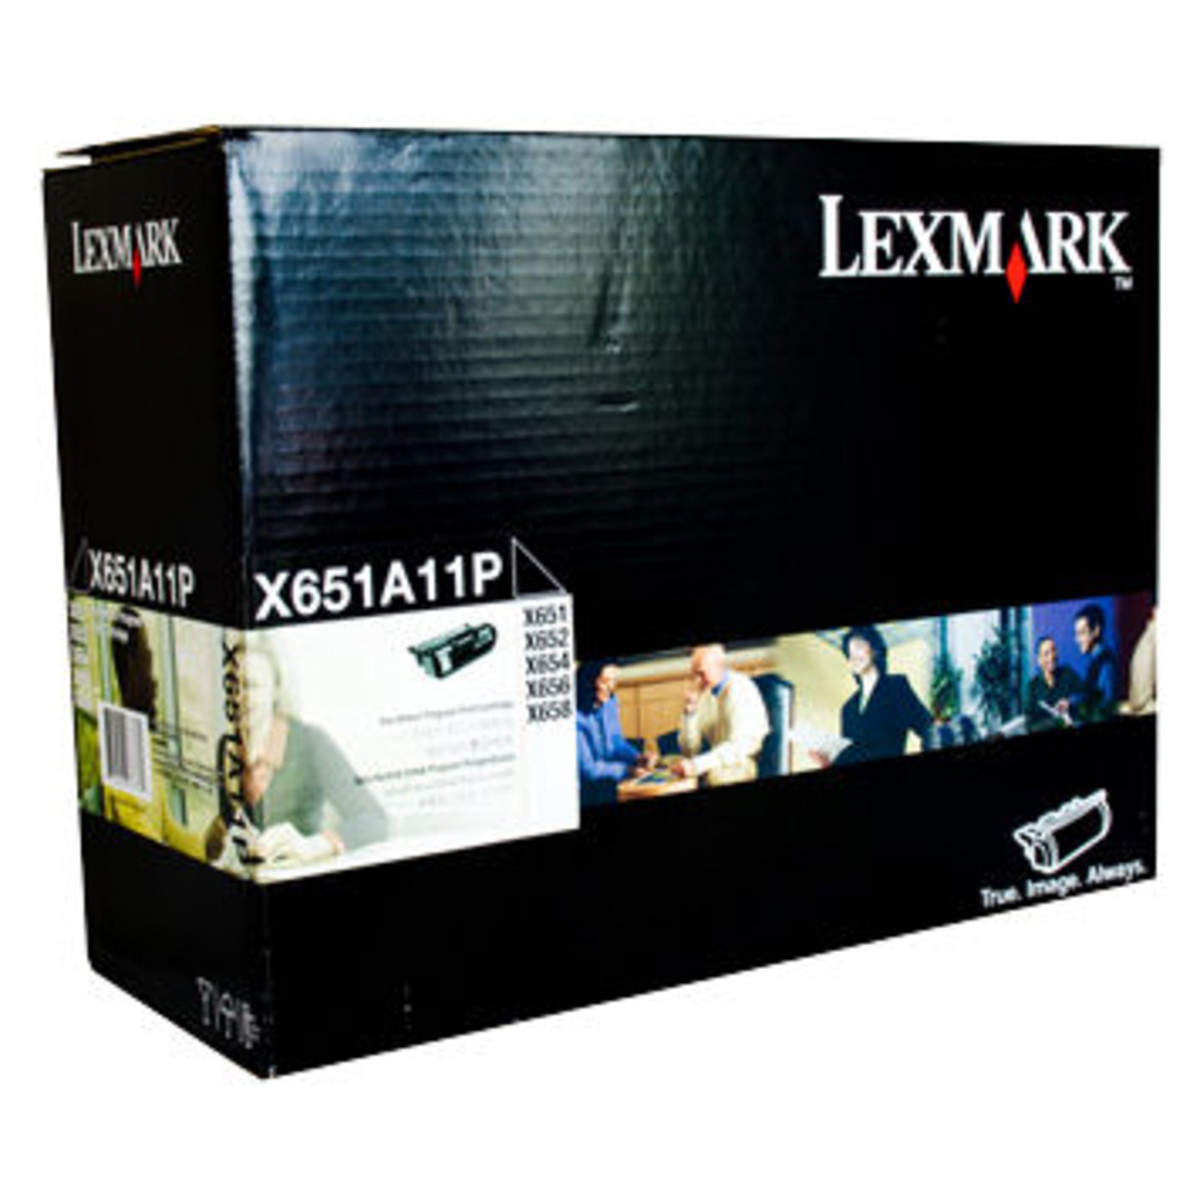 Lexmark X651A11P Black Toner Cartridge